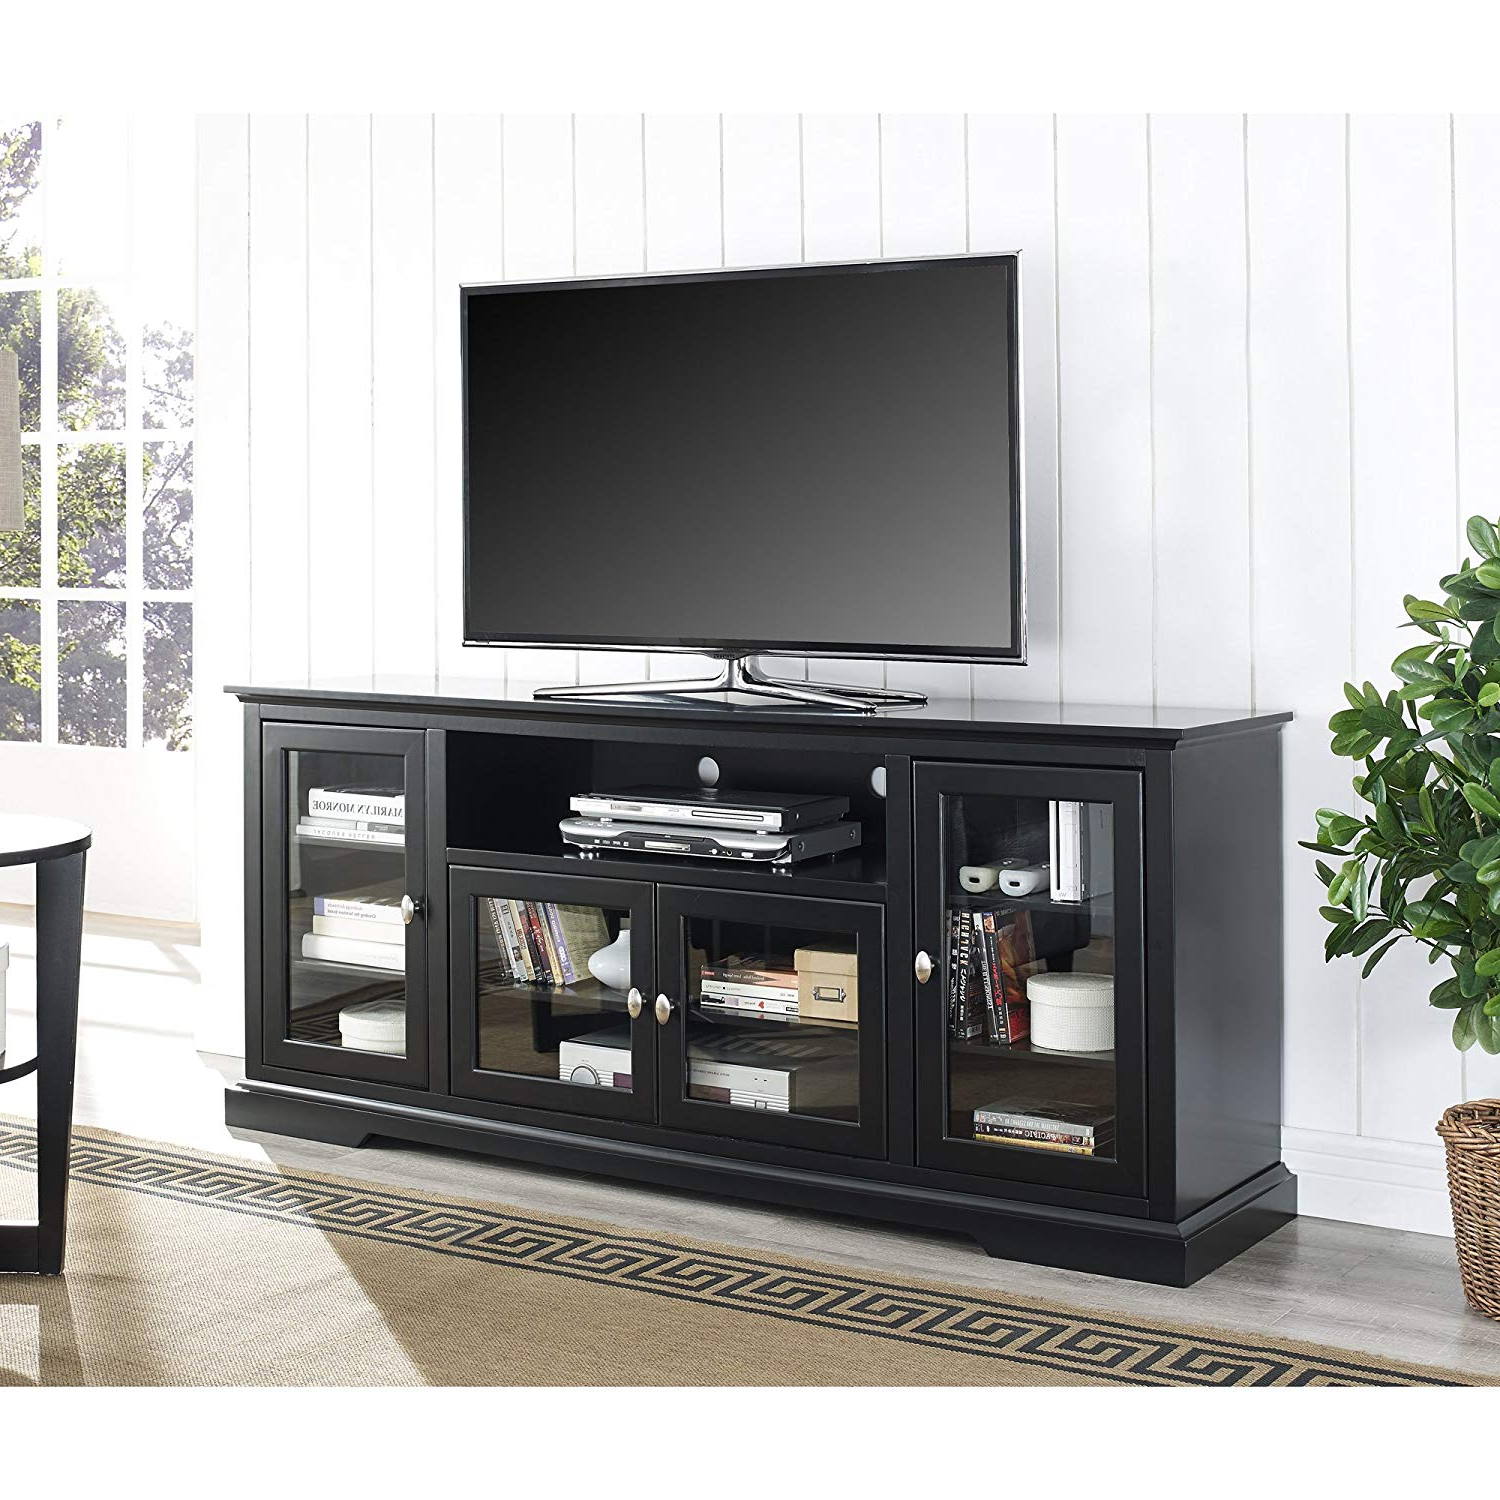 "Fashionable Wooden Tv Stands For Flat Screens Inside Amazon: We Furniture 70"" Highboy Style Wood Tv Stand Console (View 6 of 20)"